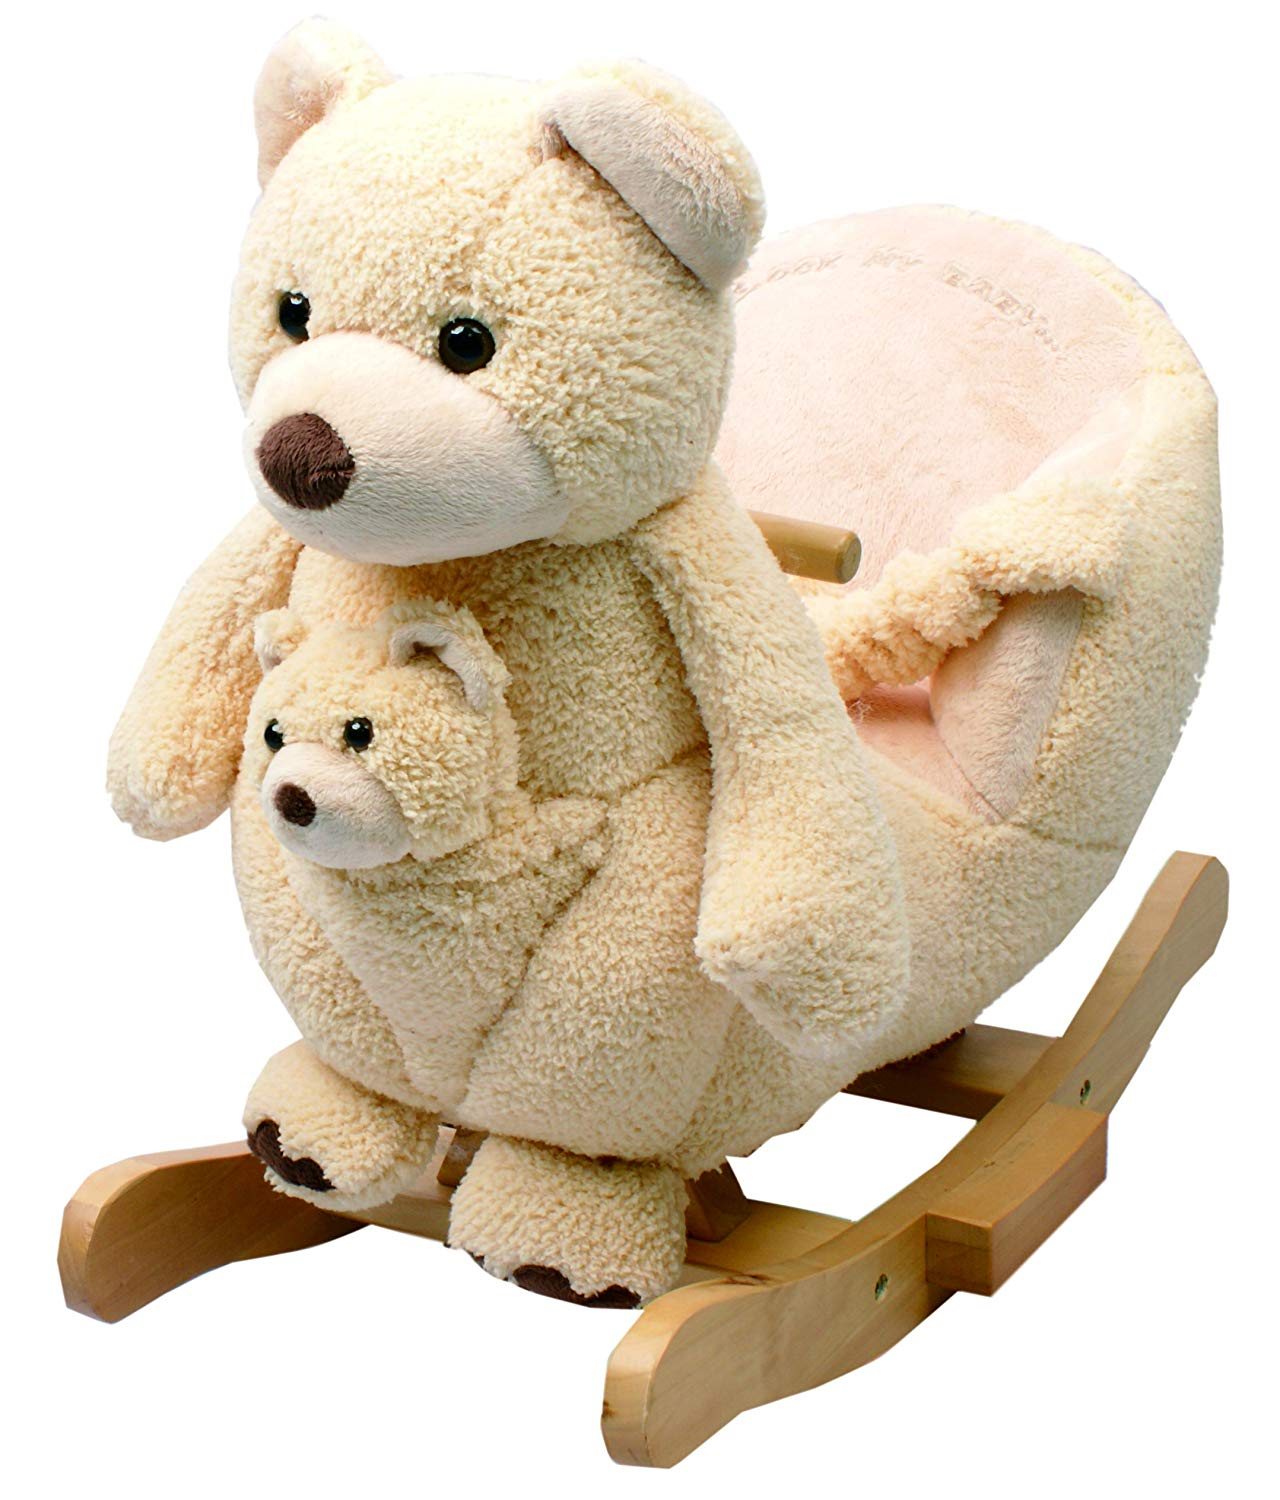 plush animal rocking chairs electric chair video adorable for baby 39s nursery